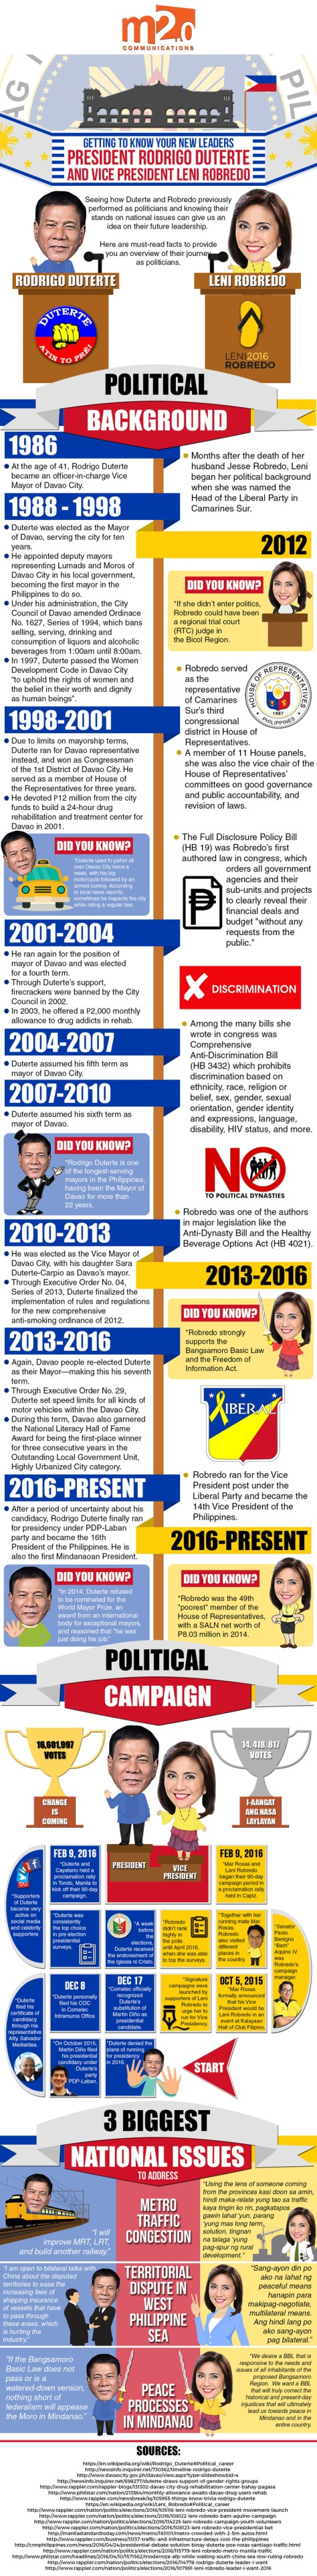 GETTING TO KNOW YOUR NEW LEADERS: President Rodrigo Duterte and Vice President Leni Robredo